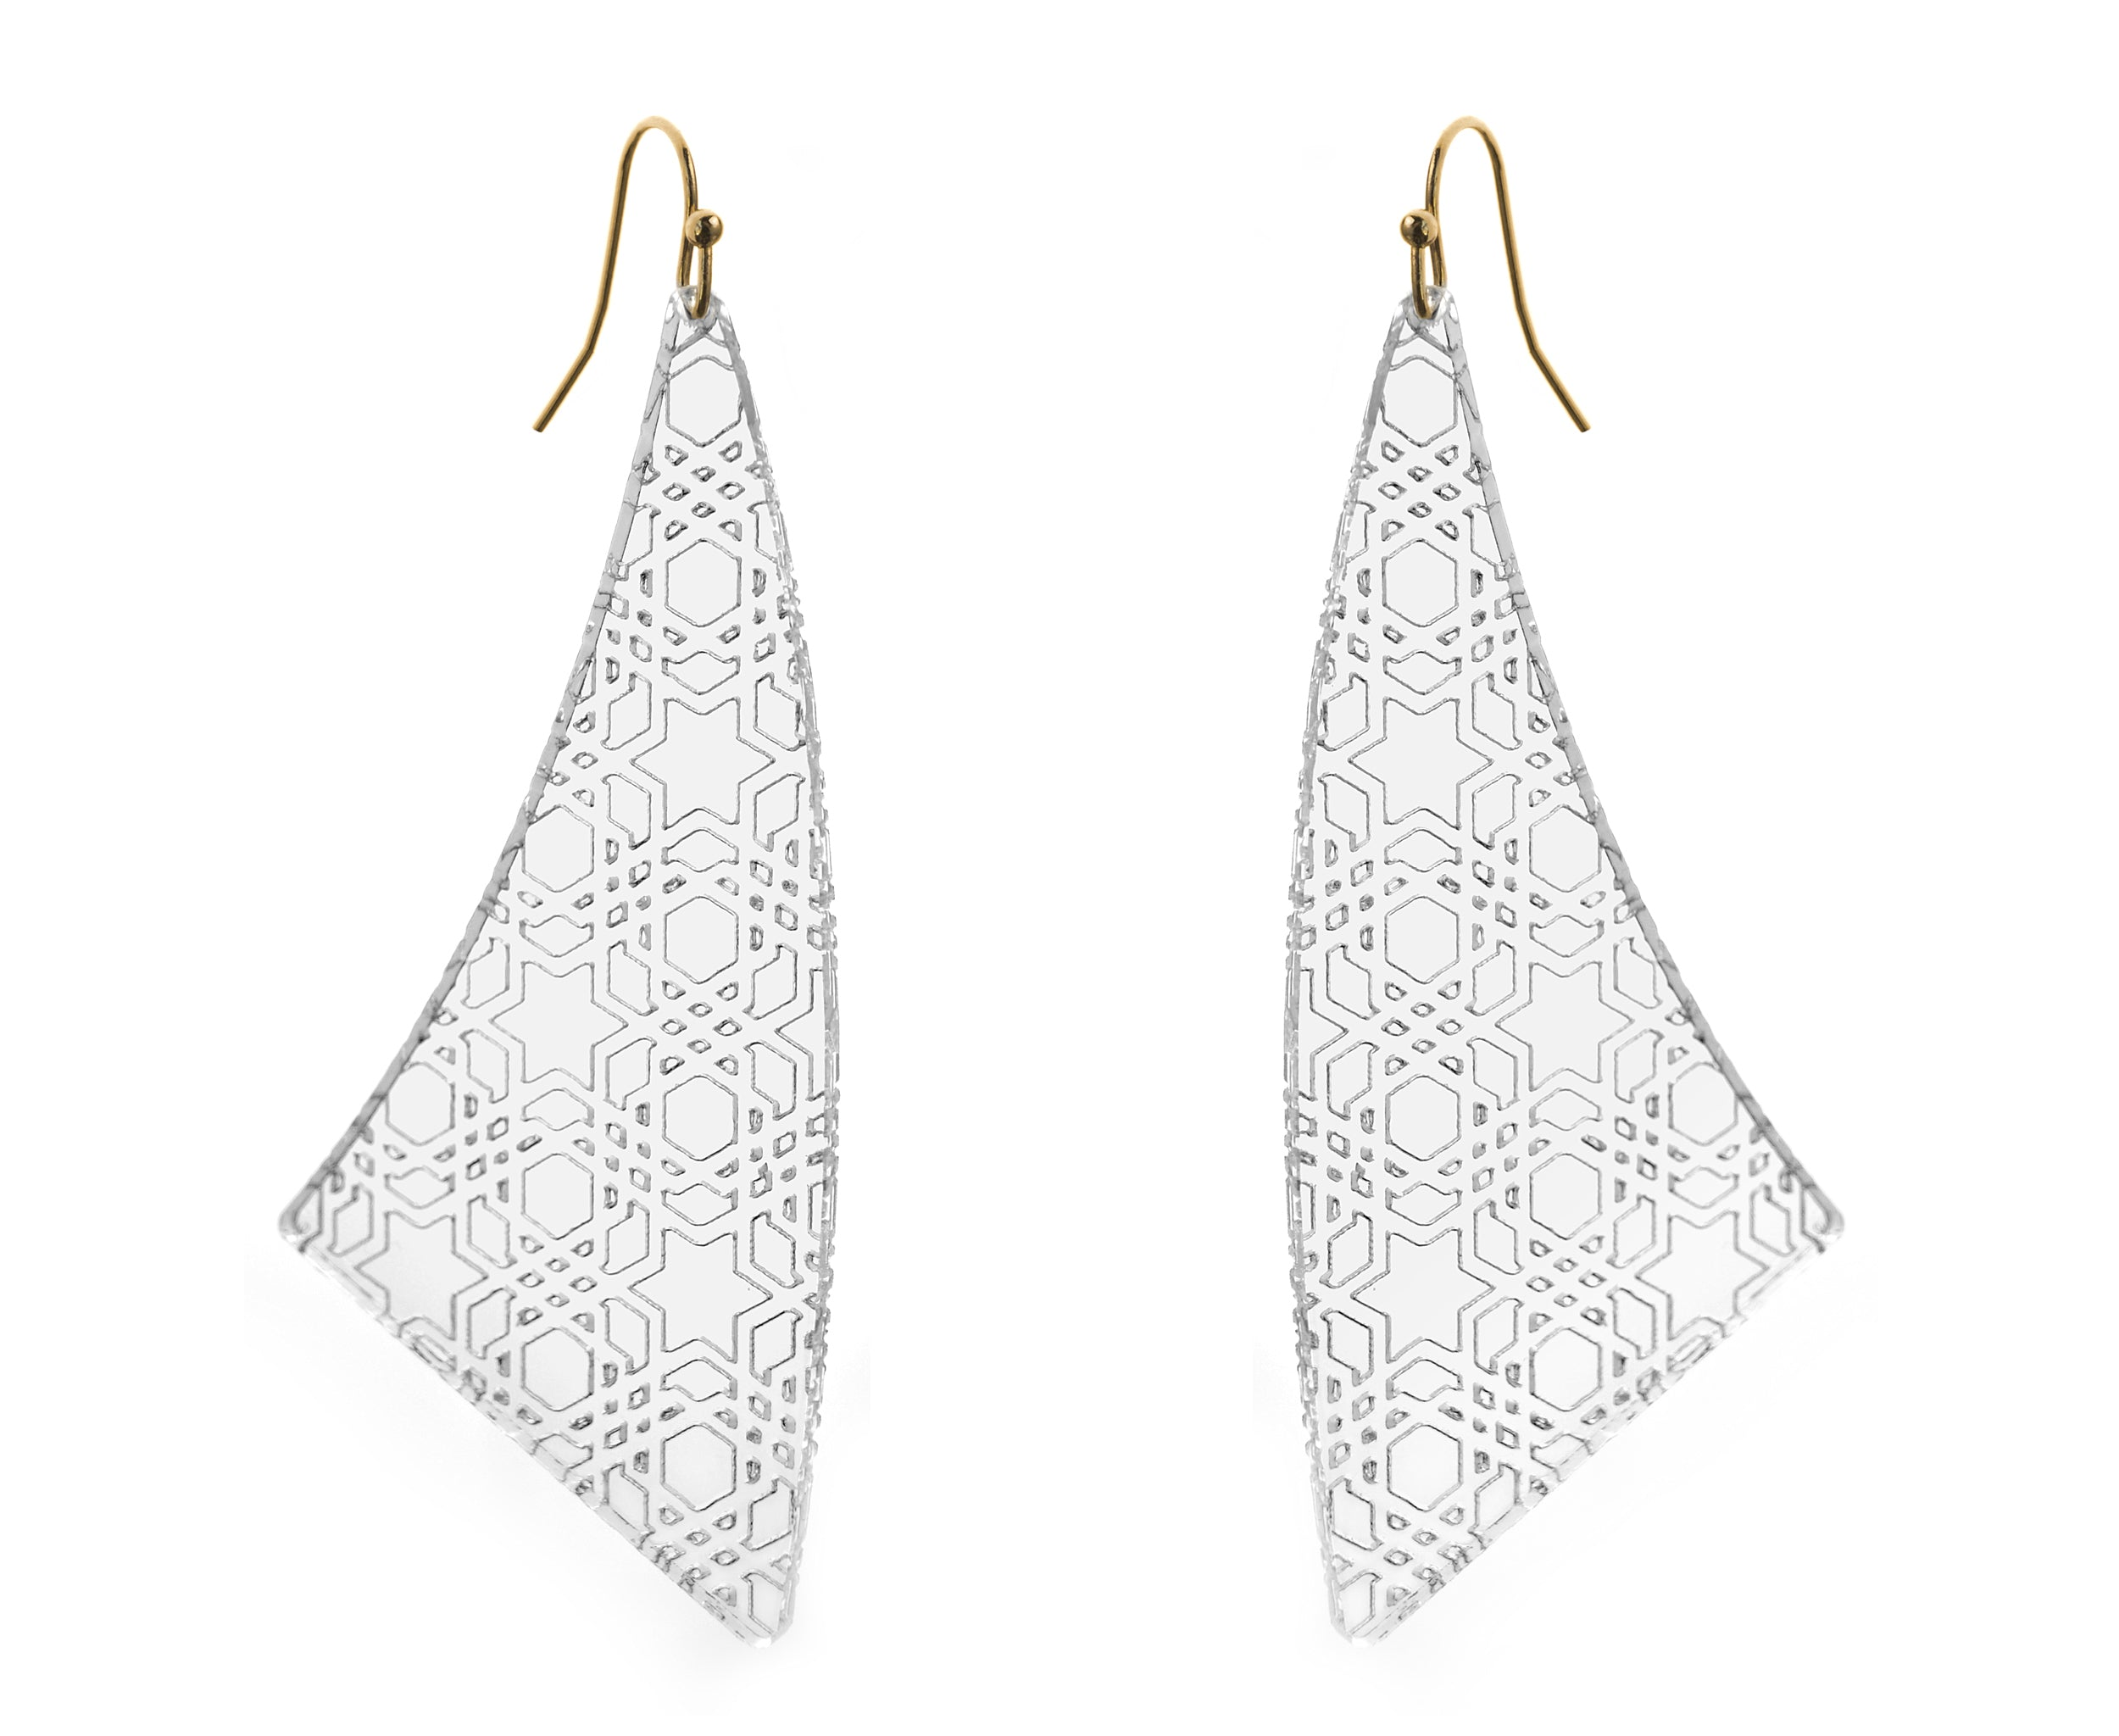 Etched Geometric Pattern Earrings